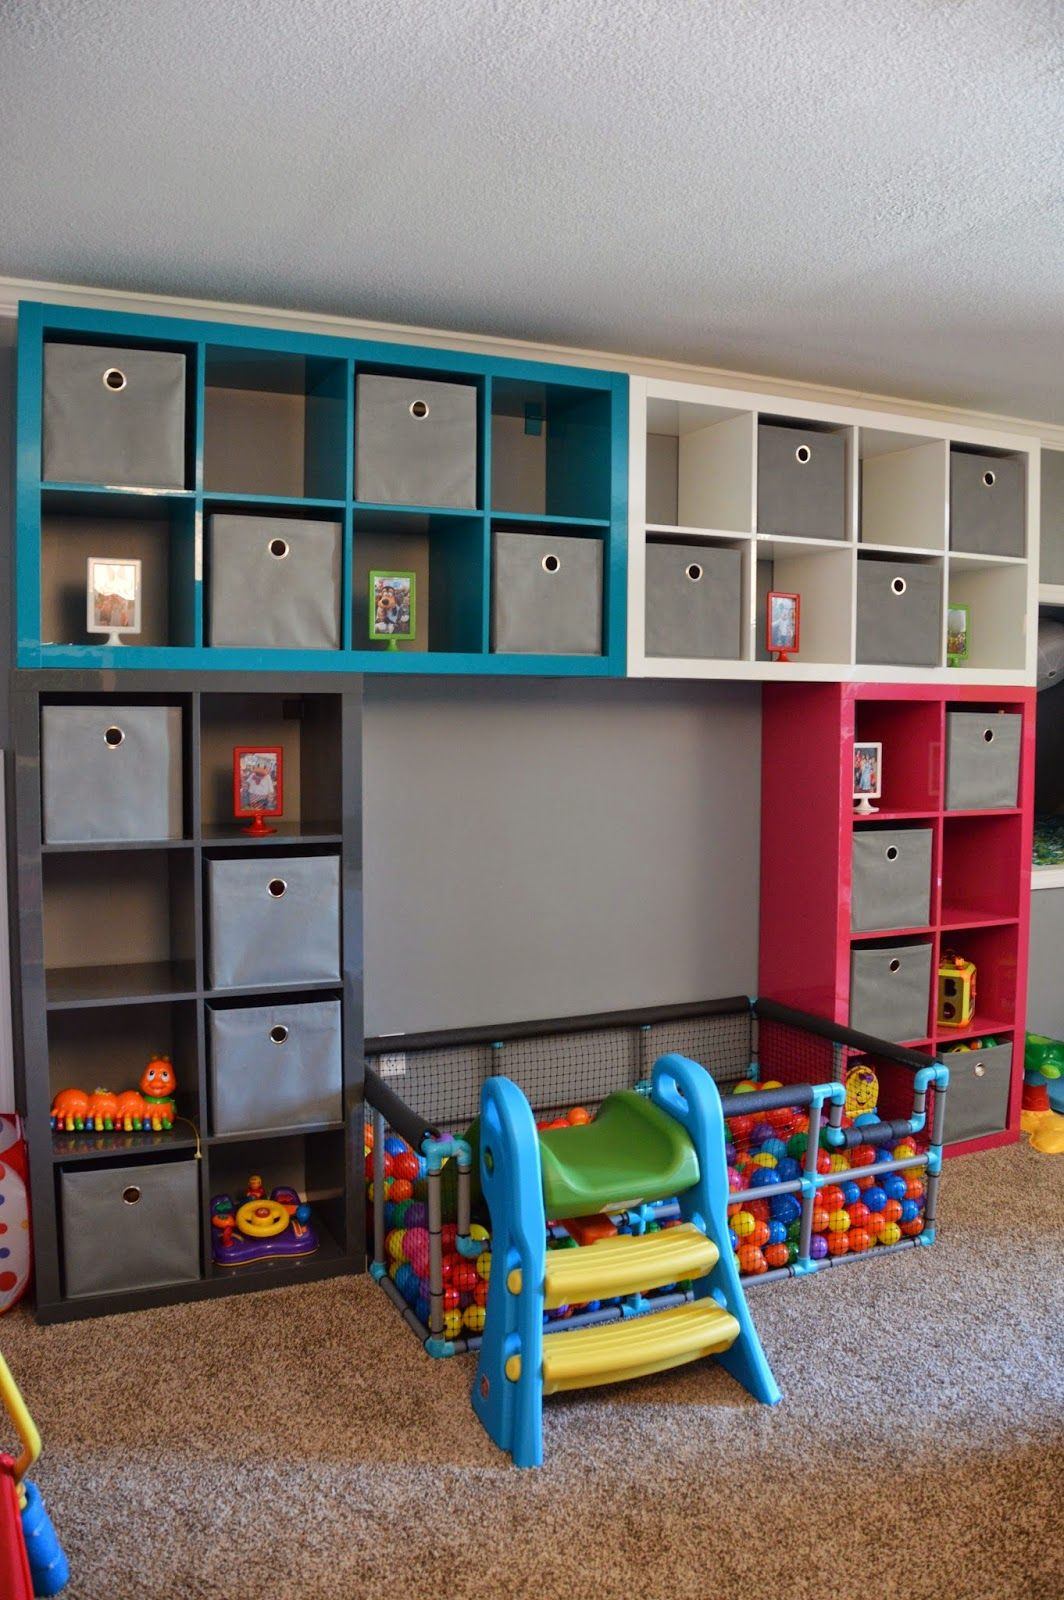 Tour Of Our Home ~ Playroom   Kinderzimmer/ Spielecke